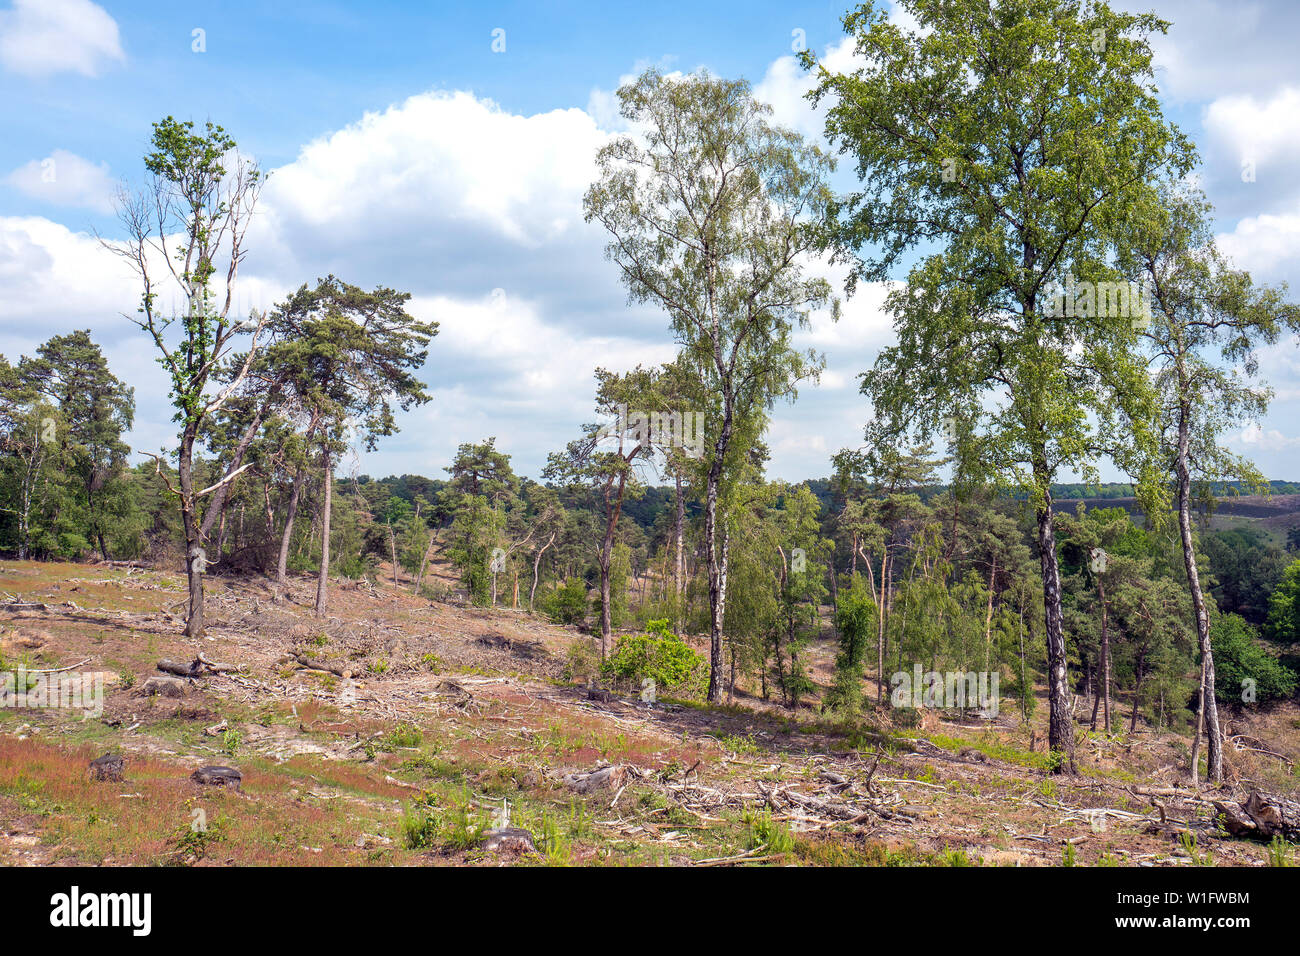 Landscape with birch trees and Pinus Sylvestris trees on the Posbank in the Netherlands. - Stock Image